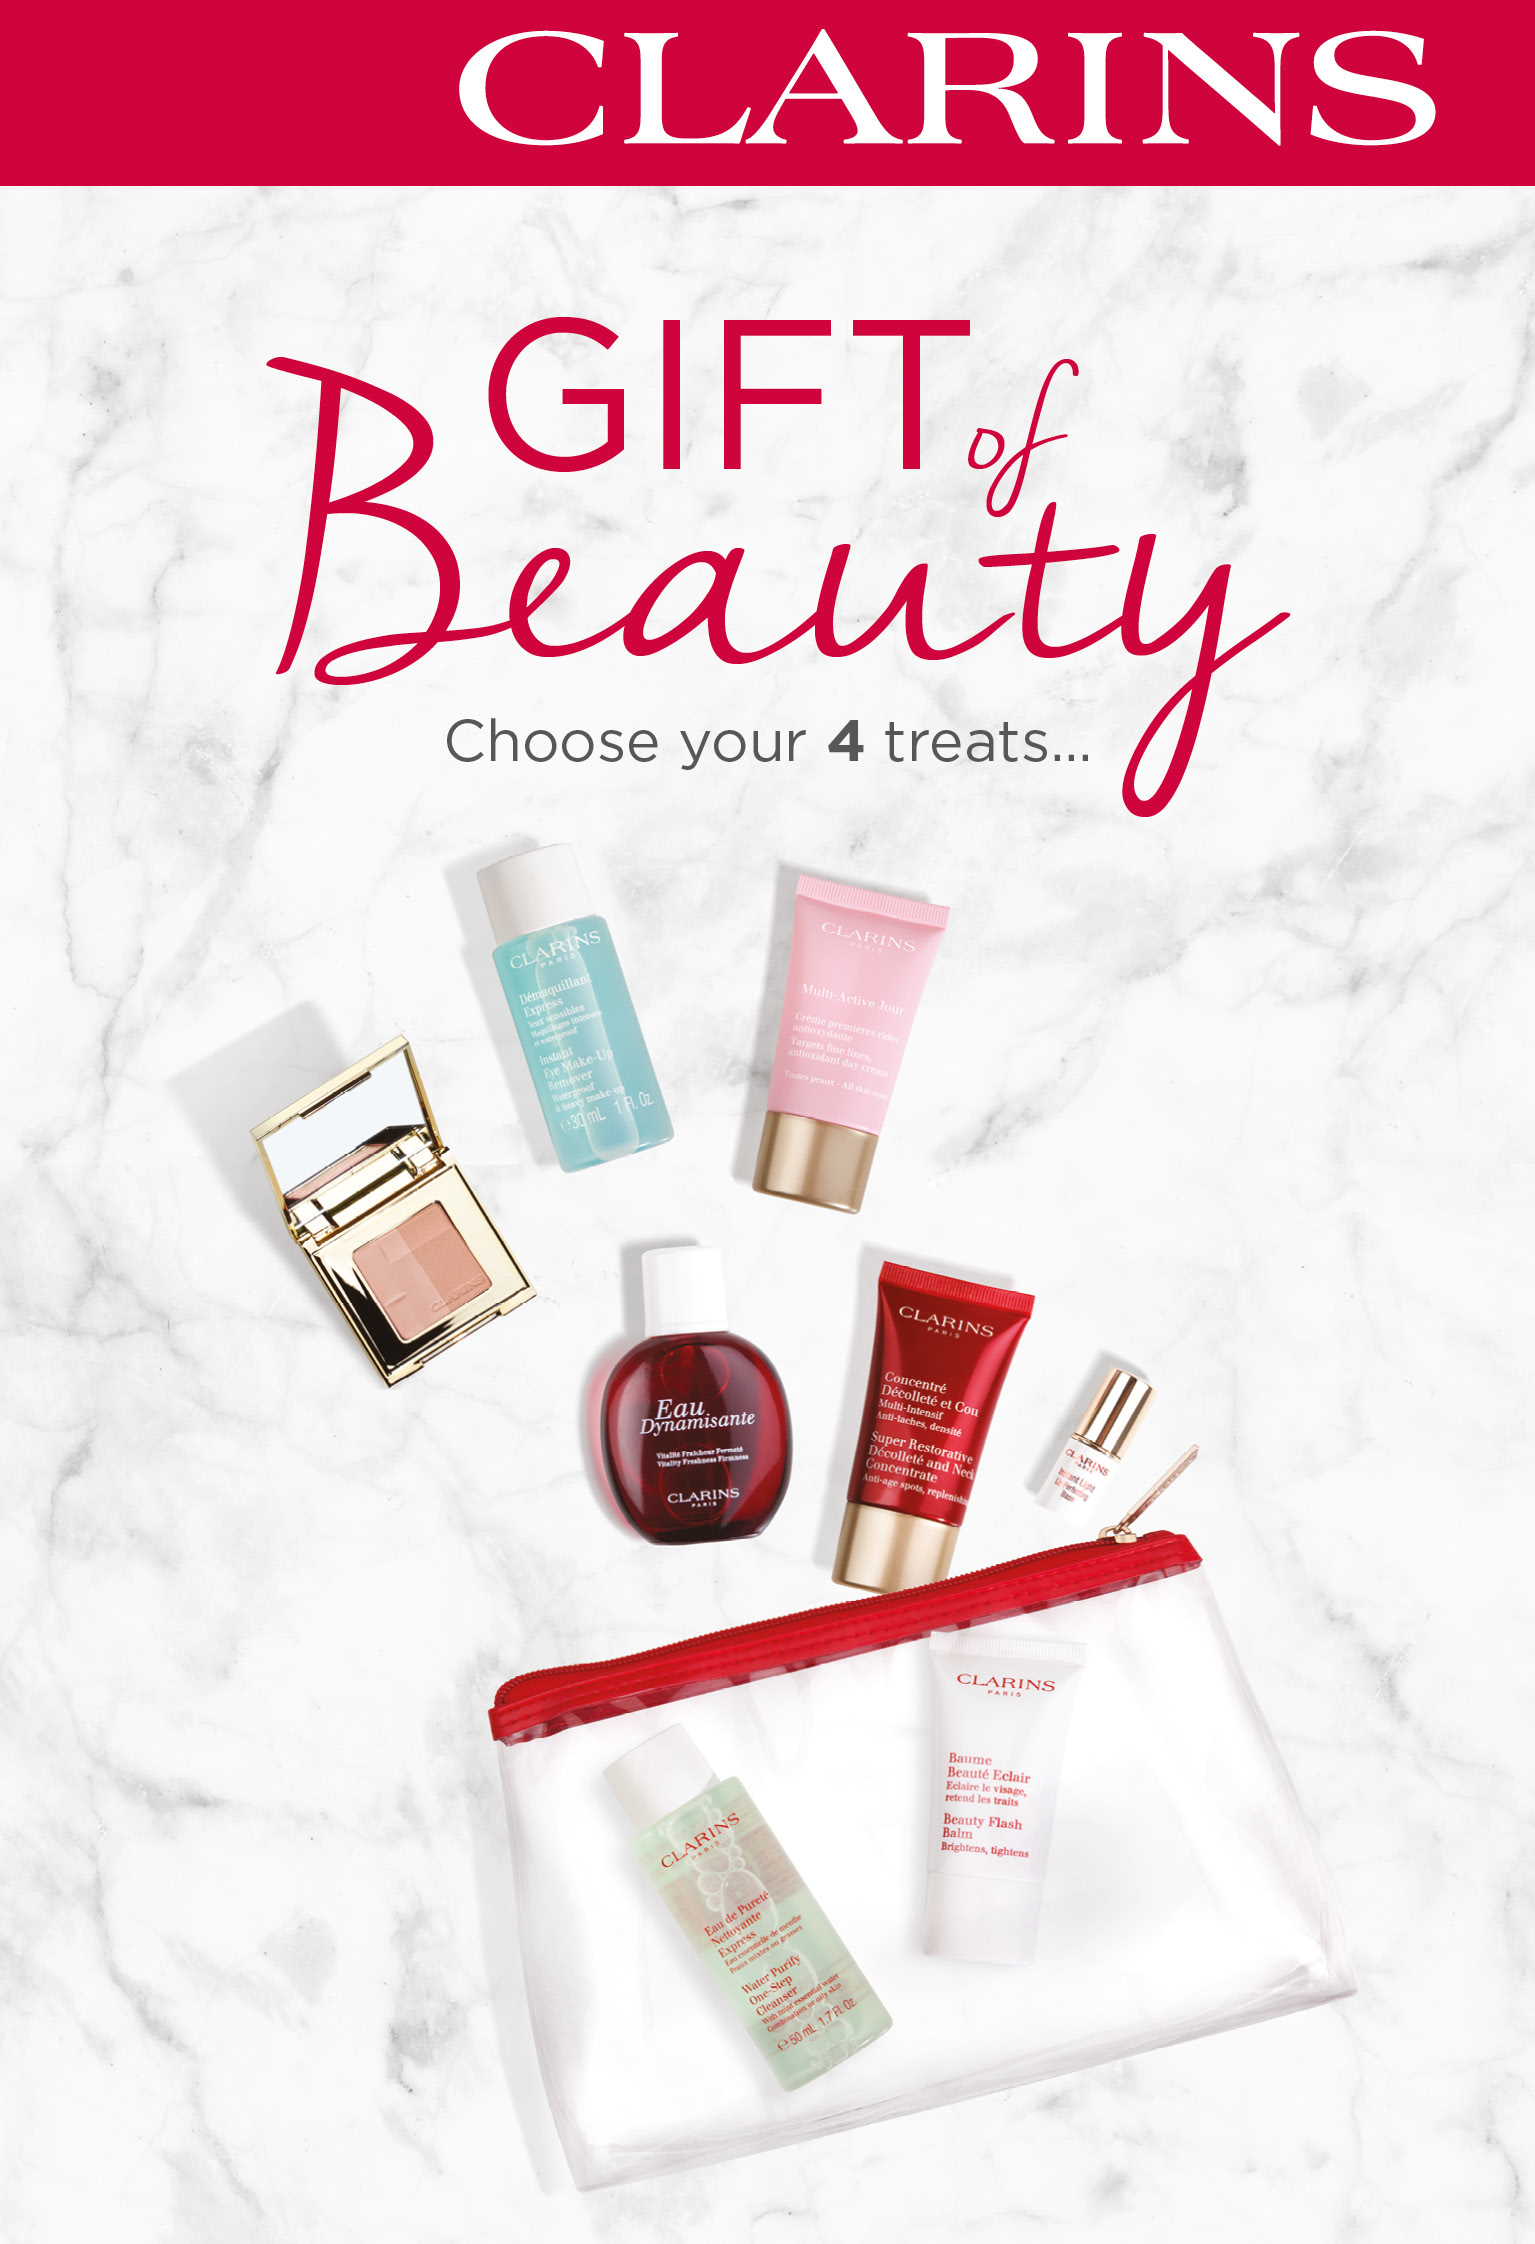 GIFT IDEAS Trust us. You can never go wrong with a Clarins product. SHOP NOW; THE GIFT OF CHOICE The perfect gift is 1 click away. SHOP NOW; Festive flowers Find the perfect gift! DISCOVER.